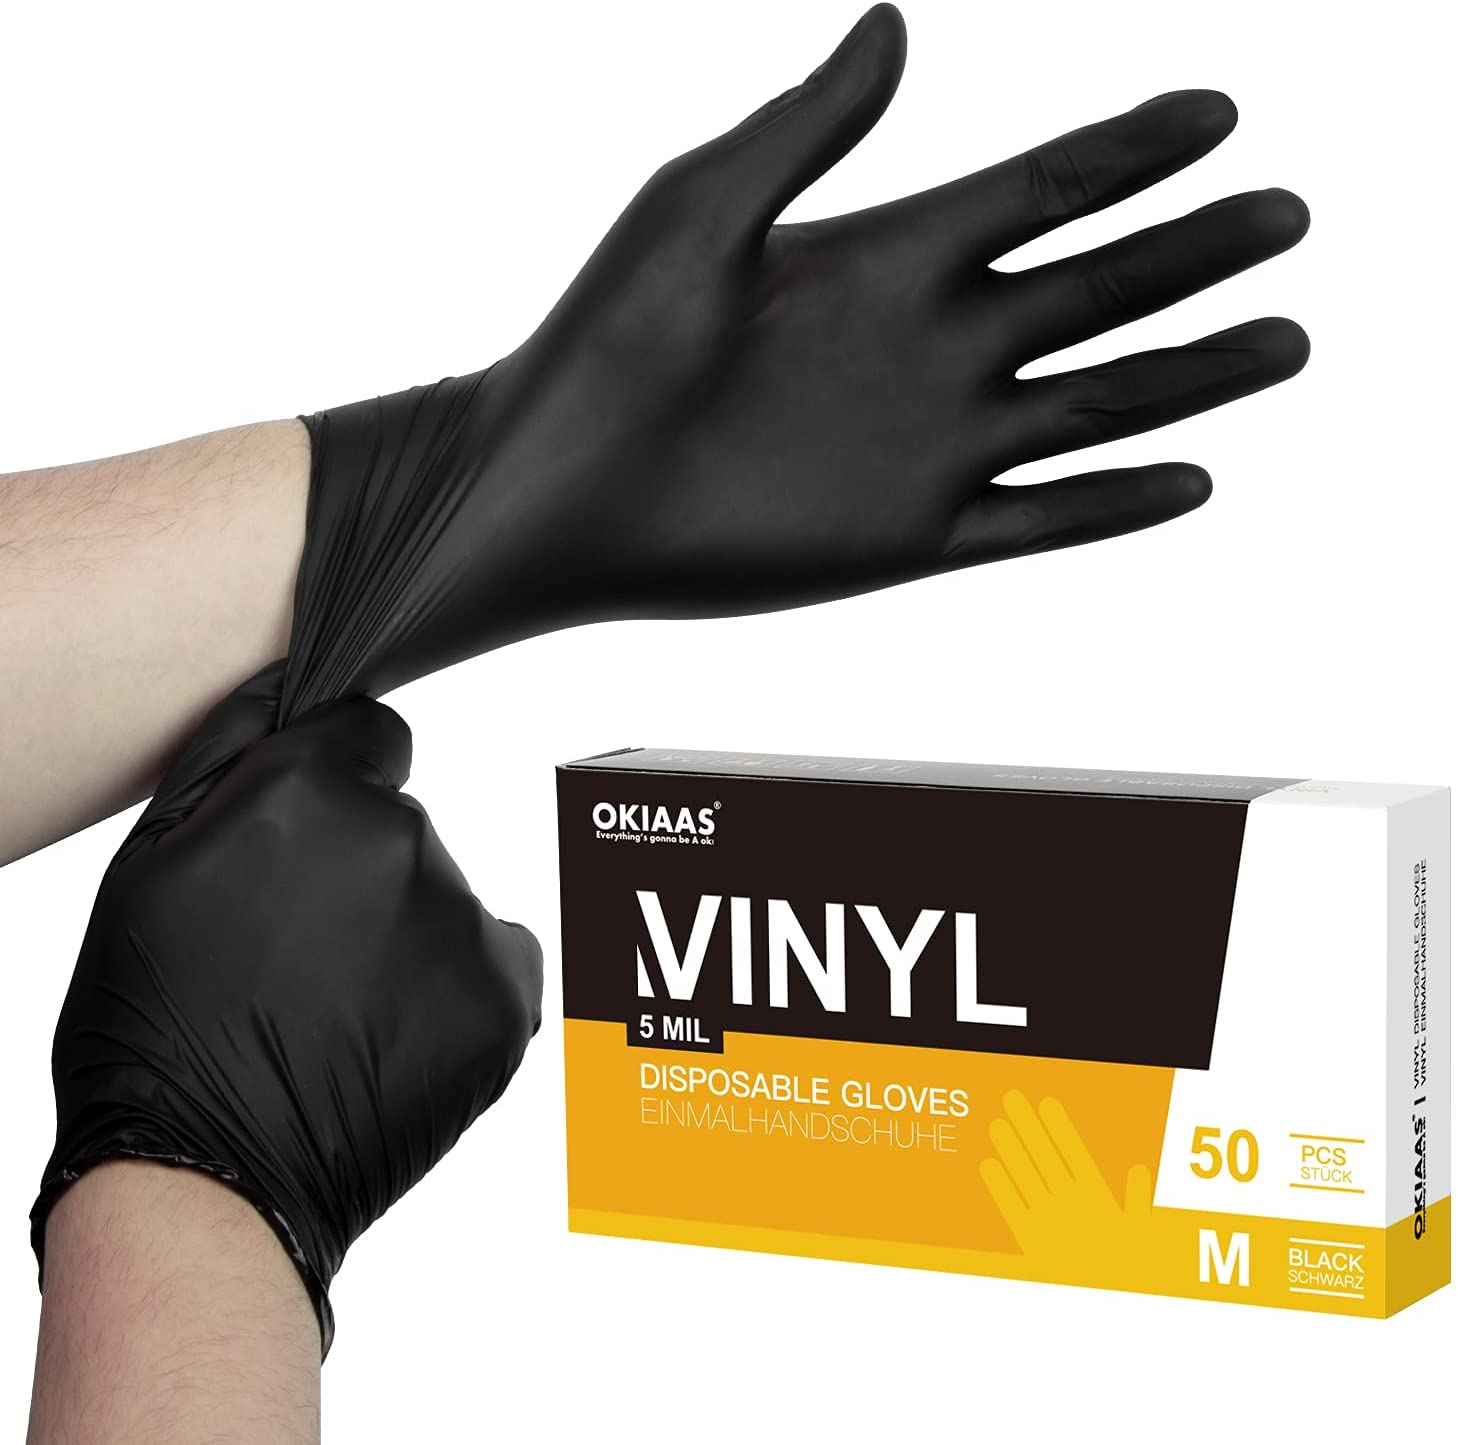 OKIAAS Black Disposable Gloves Medium, Vinyl Gloves Disposable Latex Free, 5 mil, 50 Count, for Food Prep, Household Cleaning, Hair Dye, Tattoo